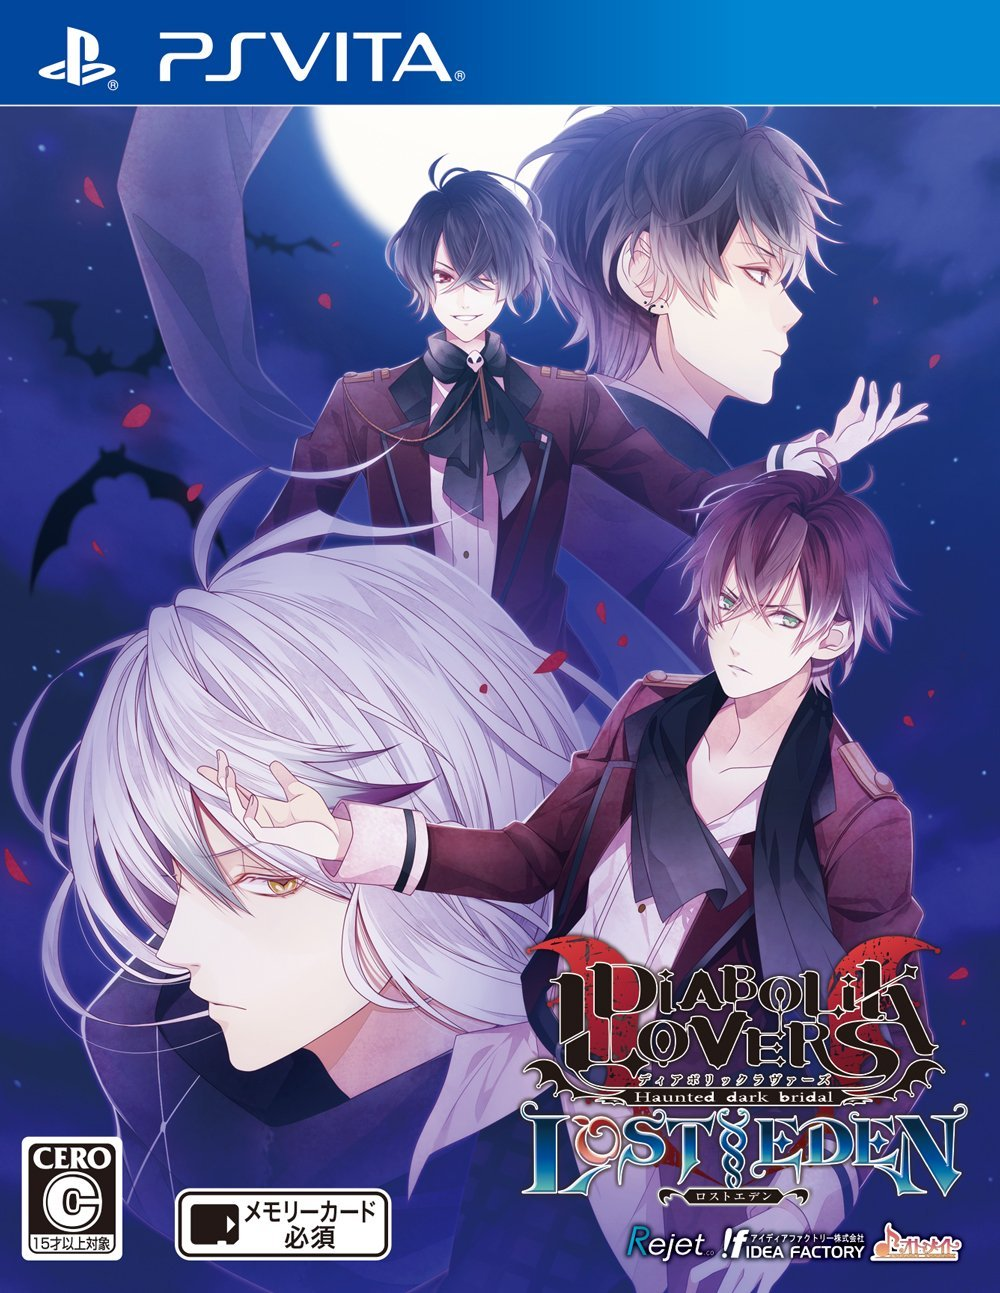 Diabolik Lovers ~Lost Eden~